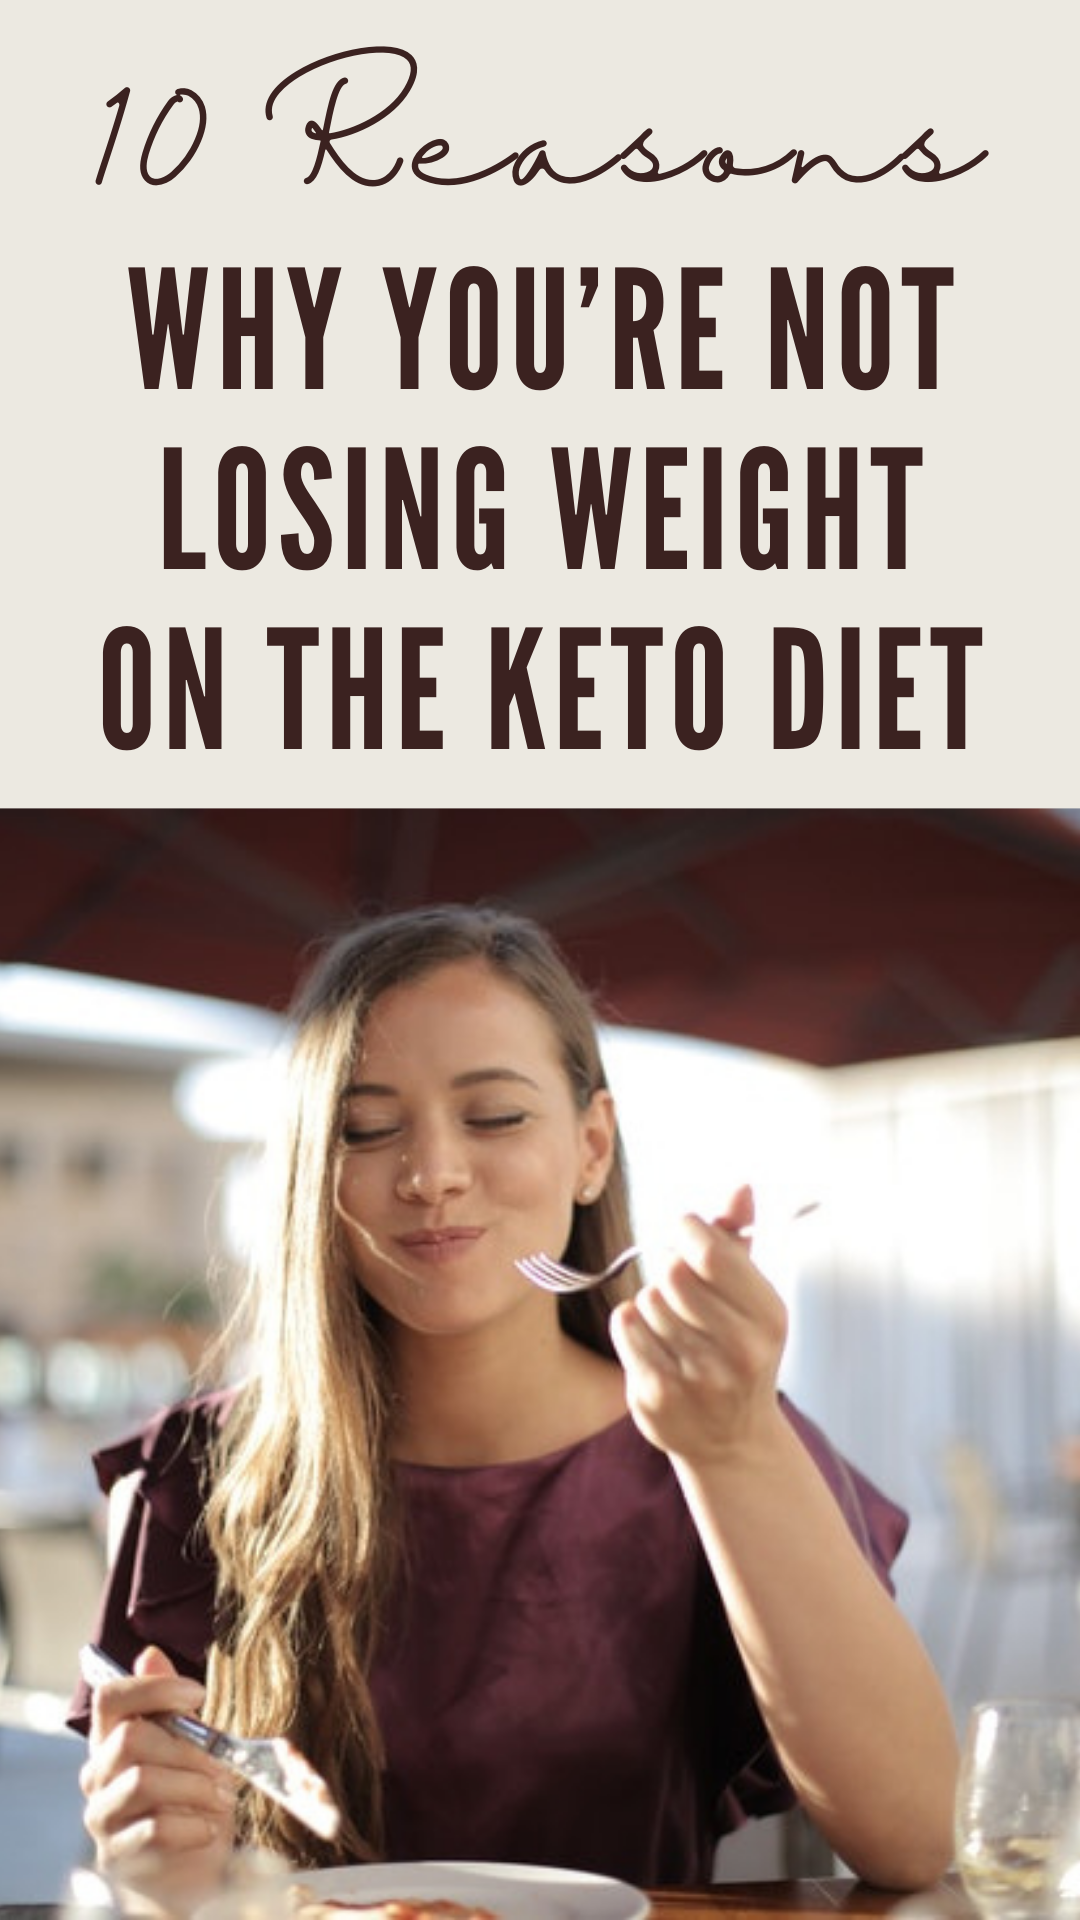 10 Reasons Why You're Not Losing Weight on the Keto Diet